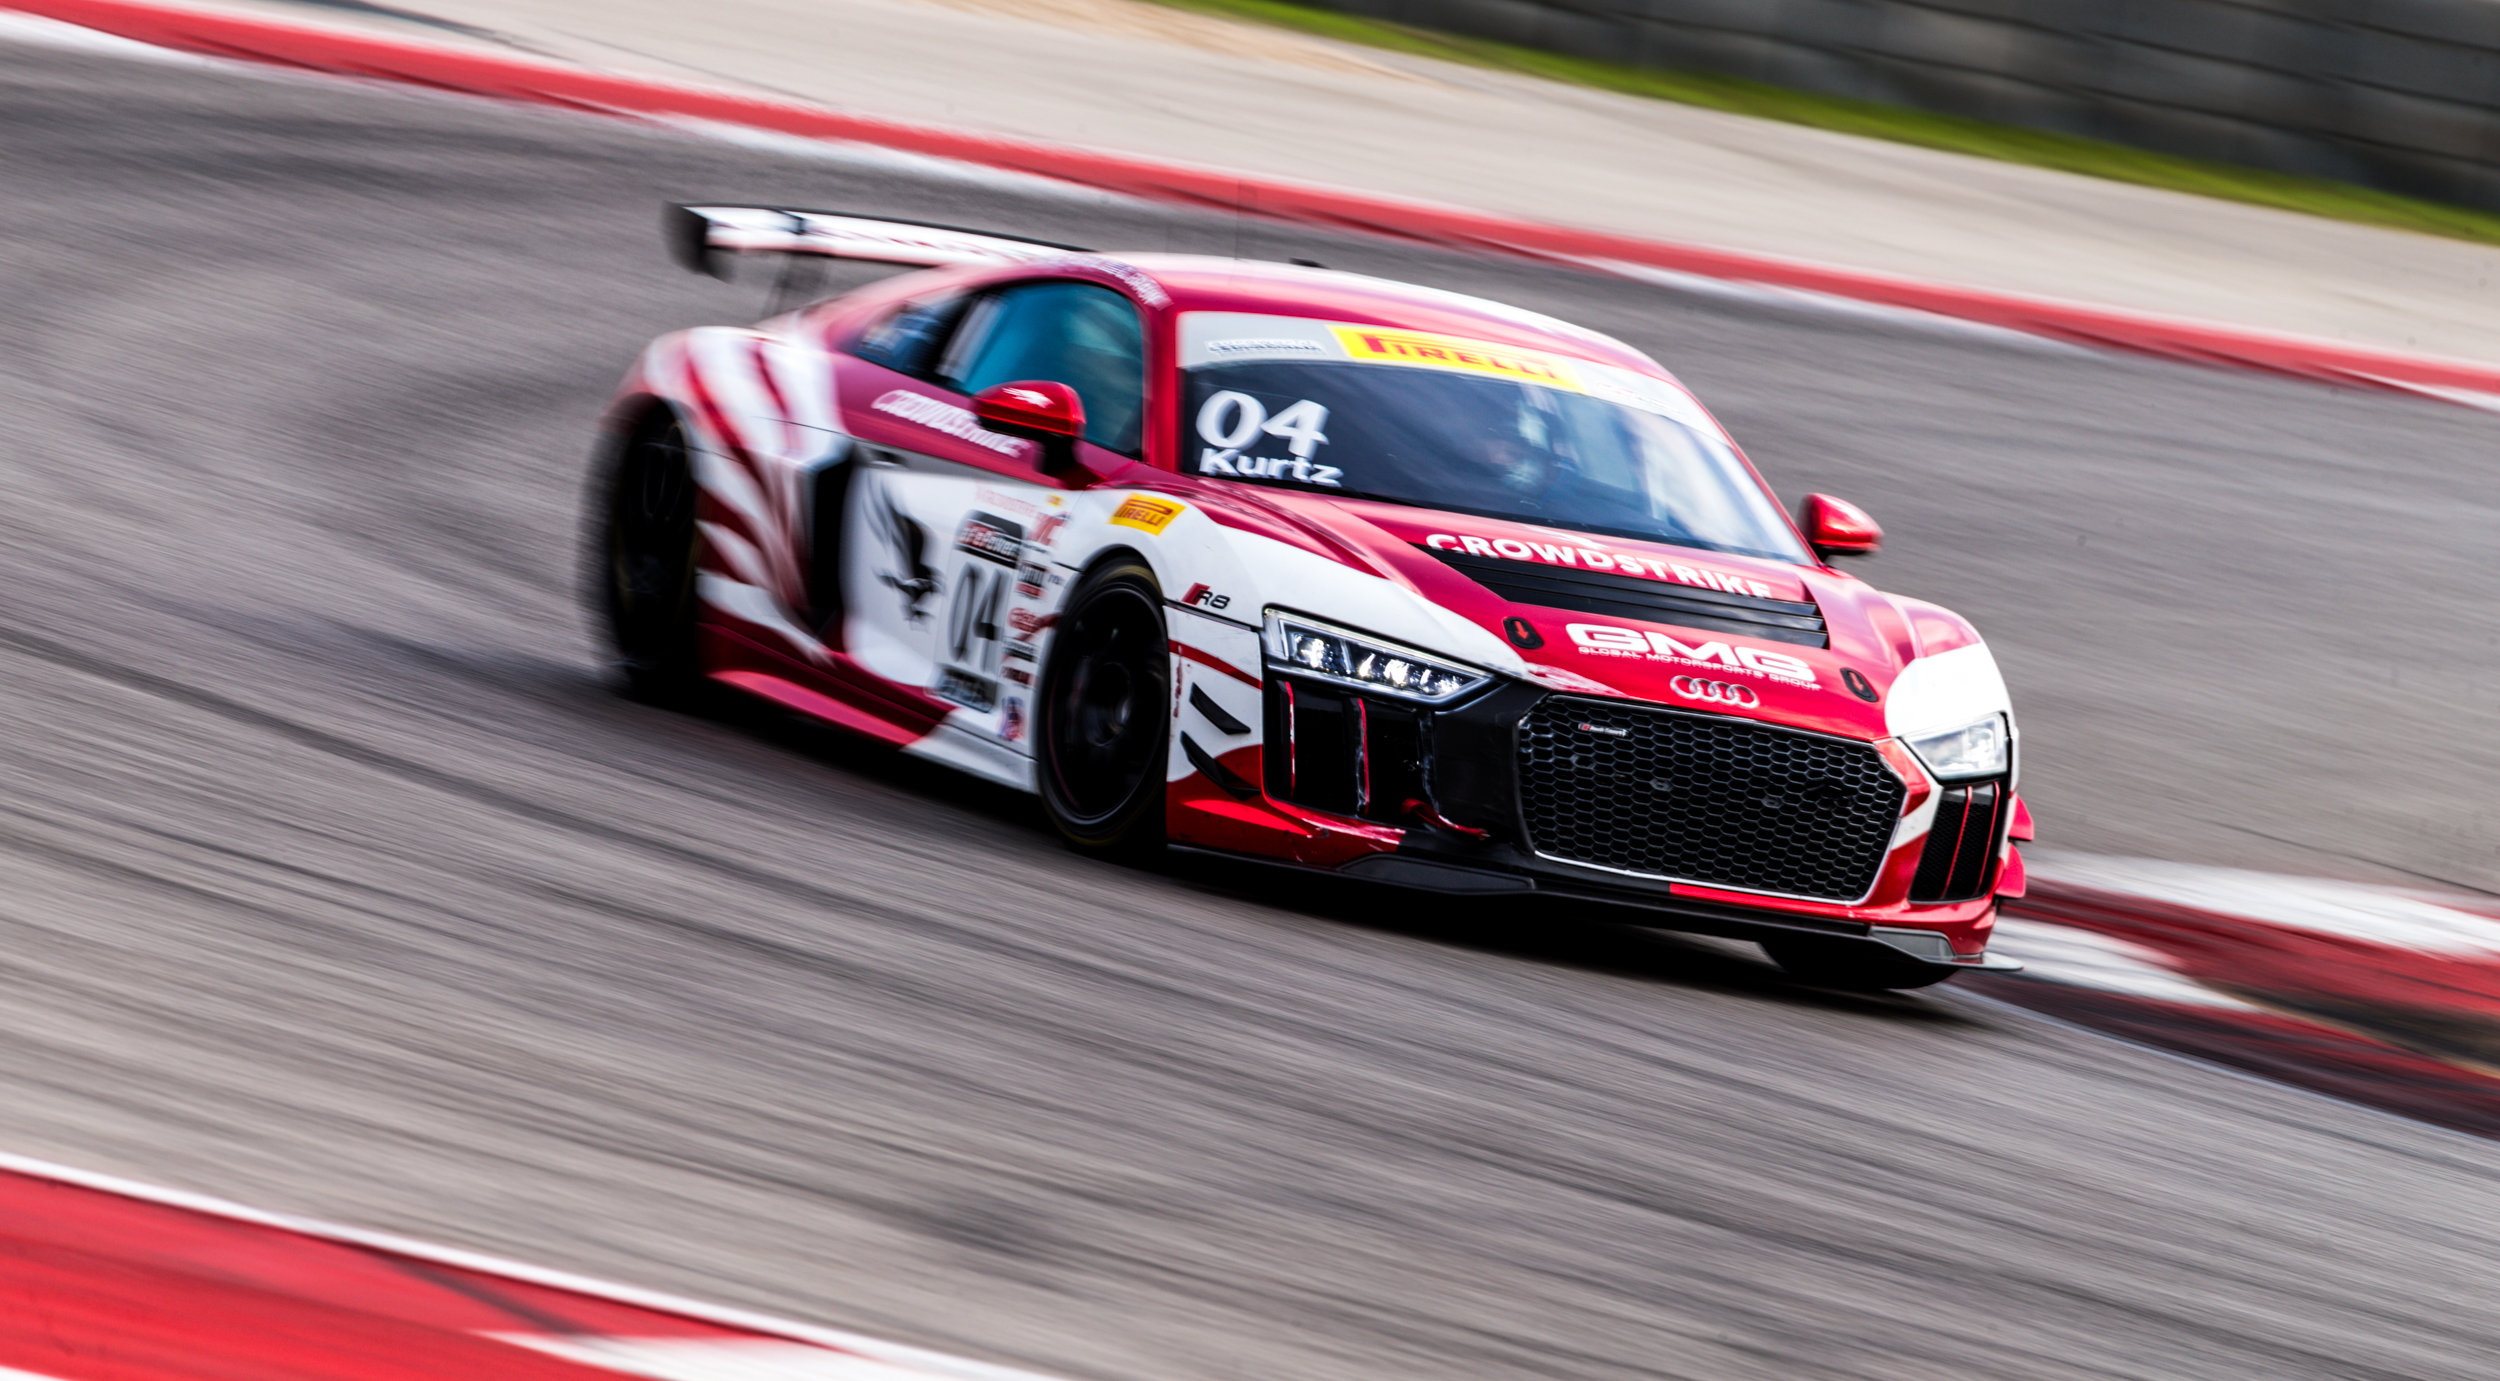 George Kurtz in the GMG Racing Audi GT4